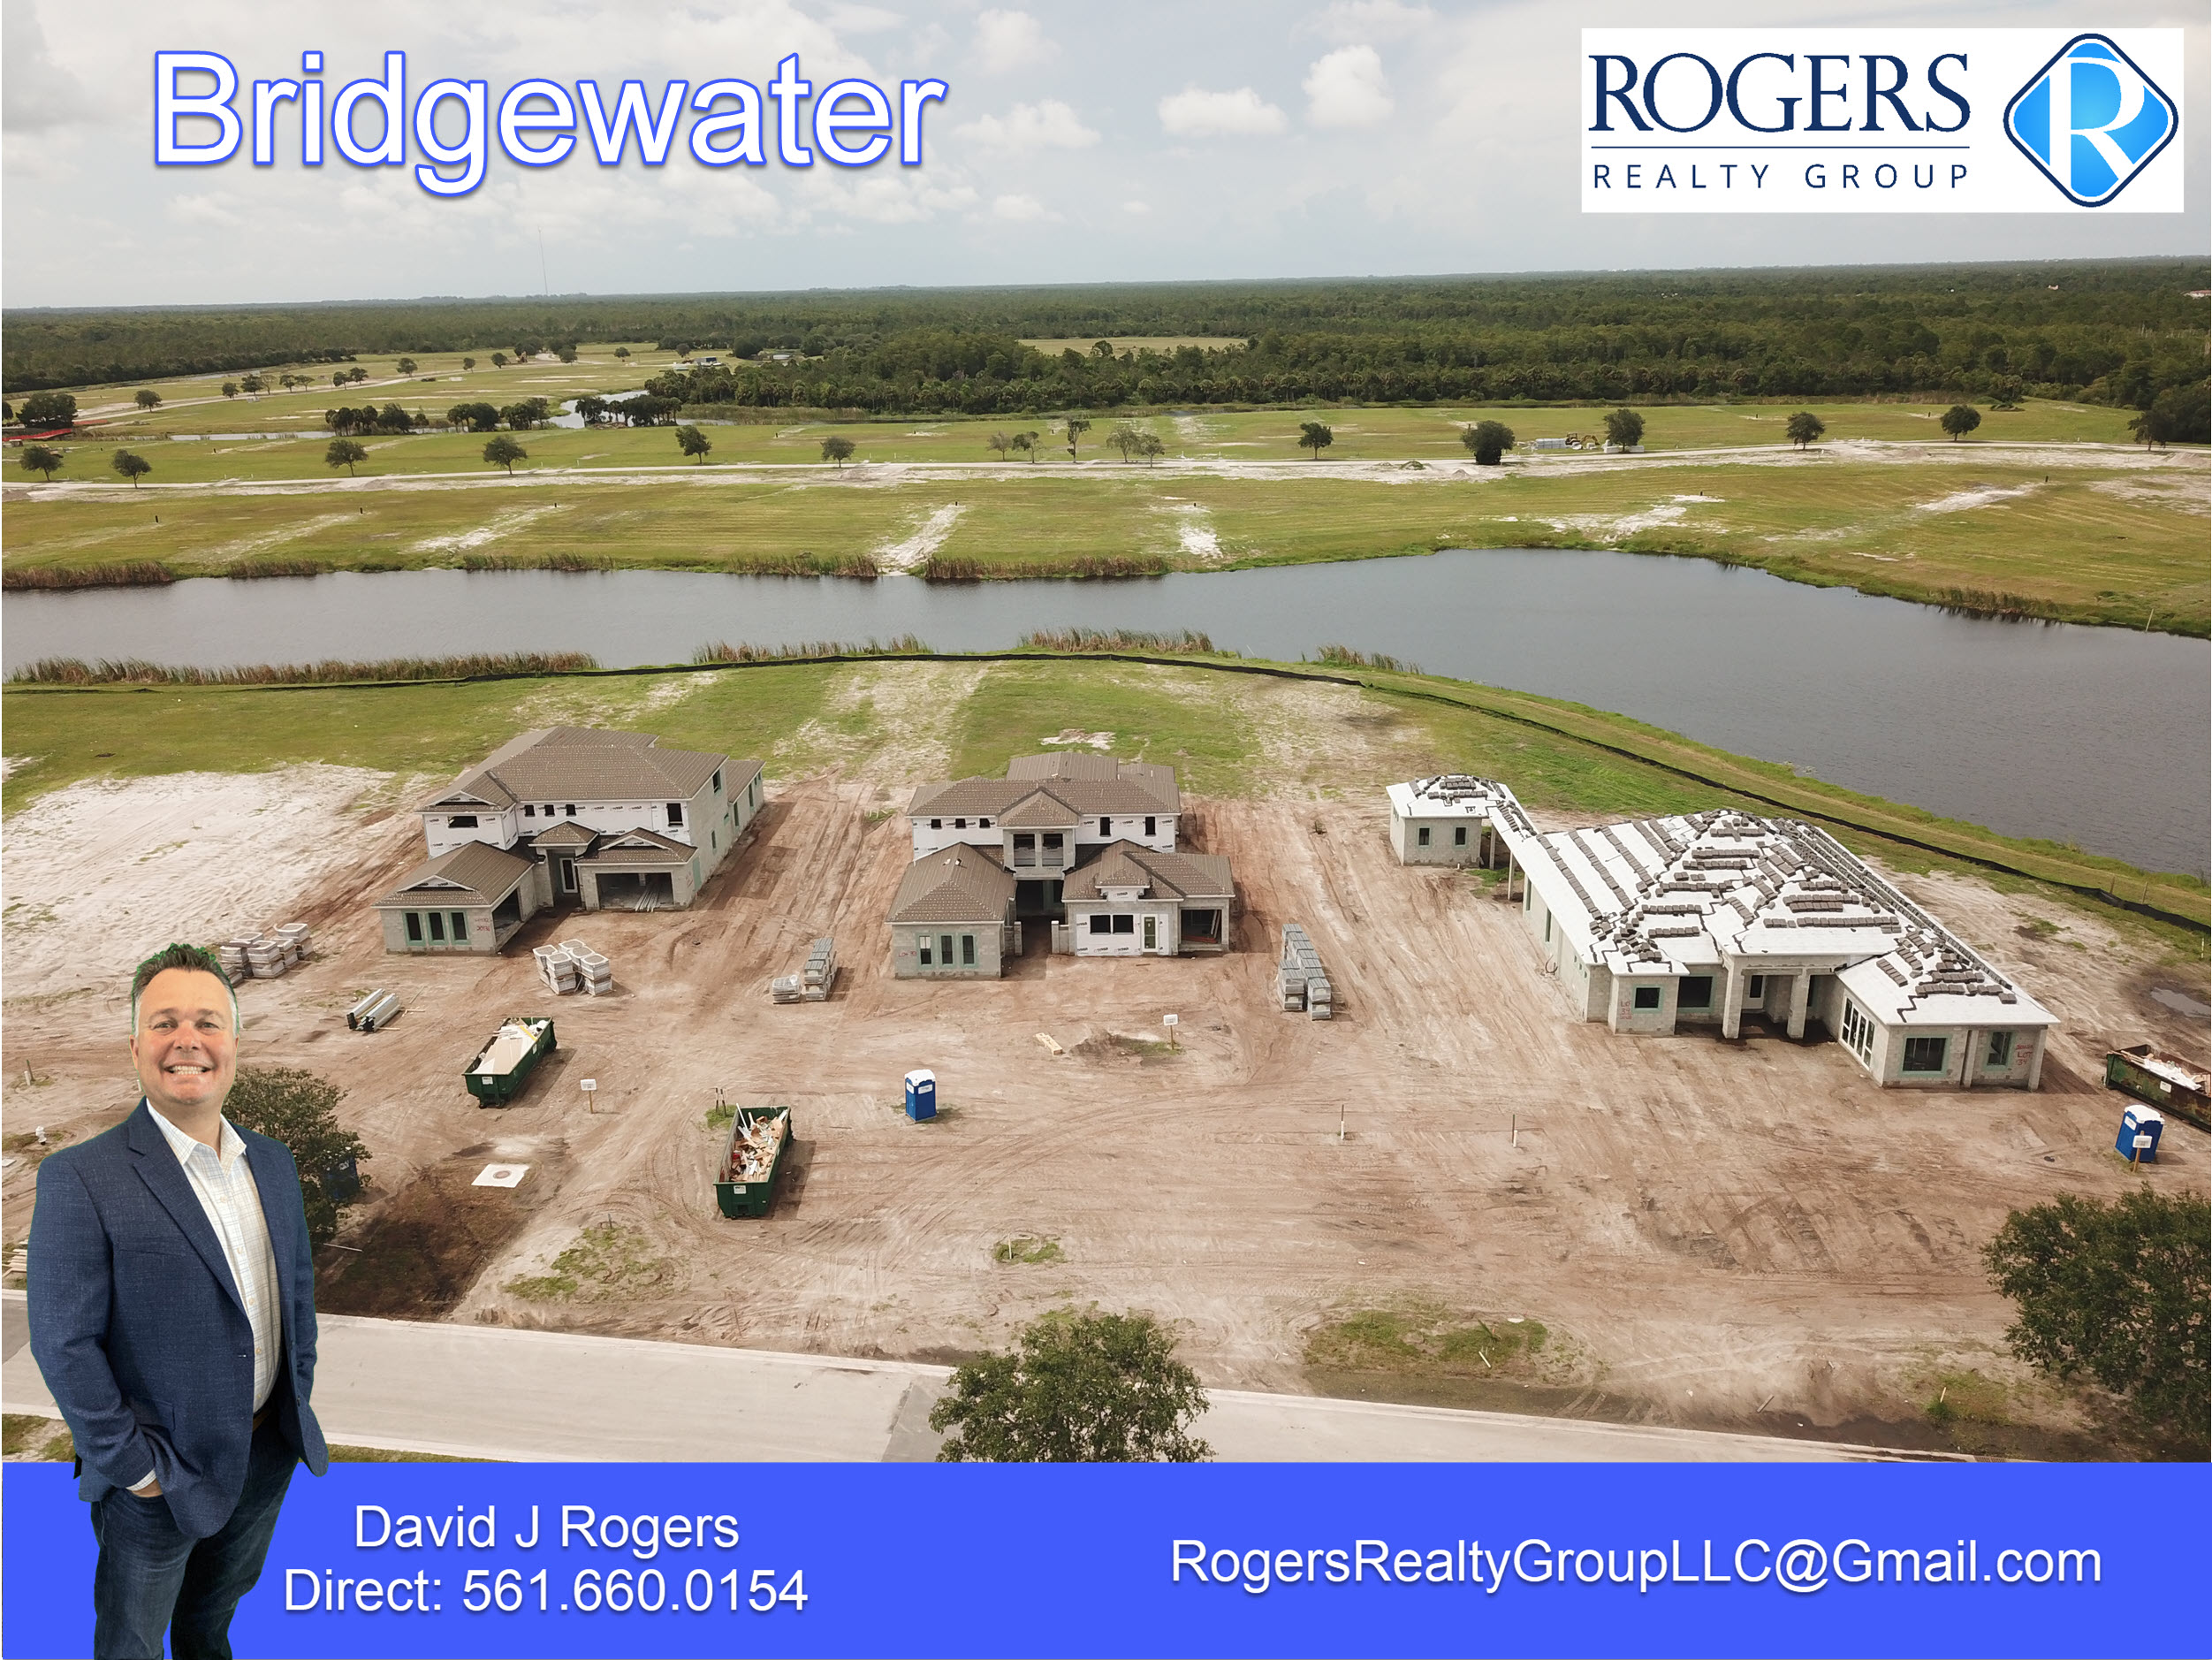 drone view of 3 homes under construction in the new bridgewater community in jupiter fl